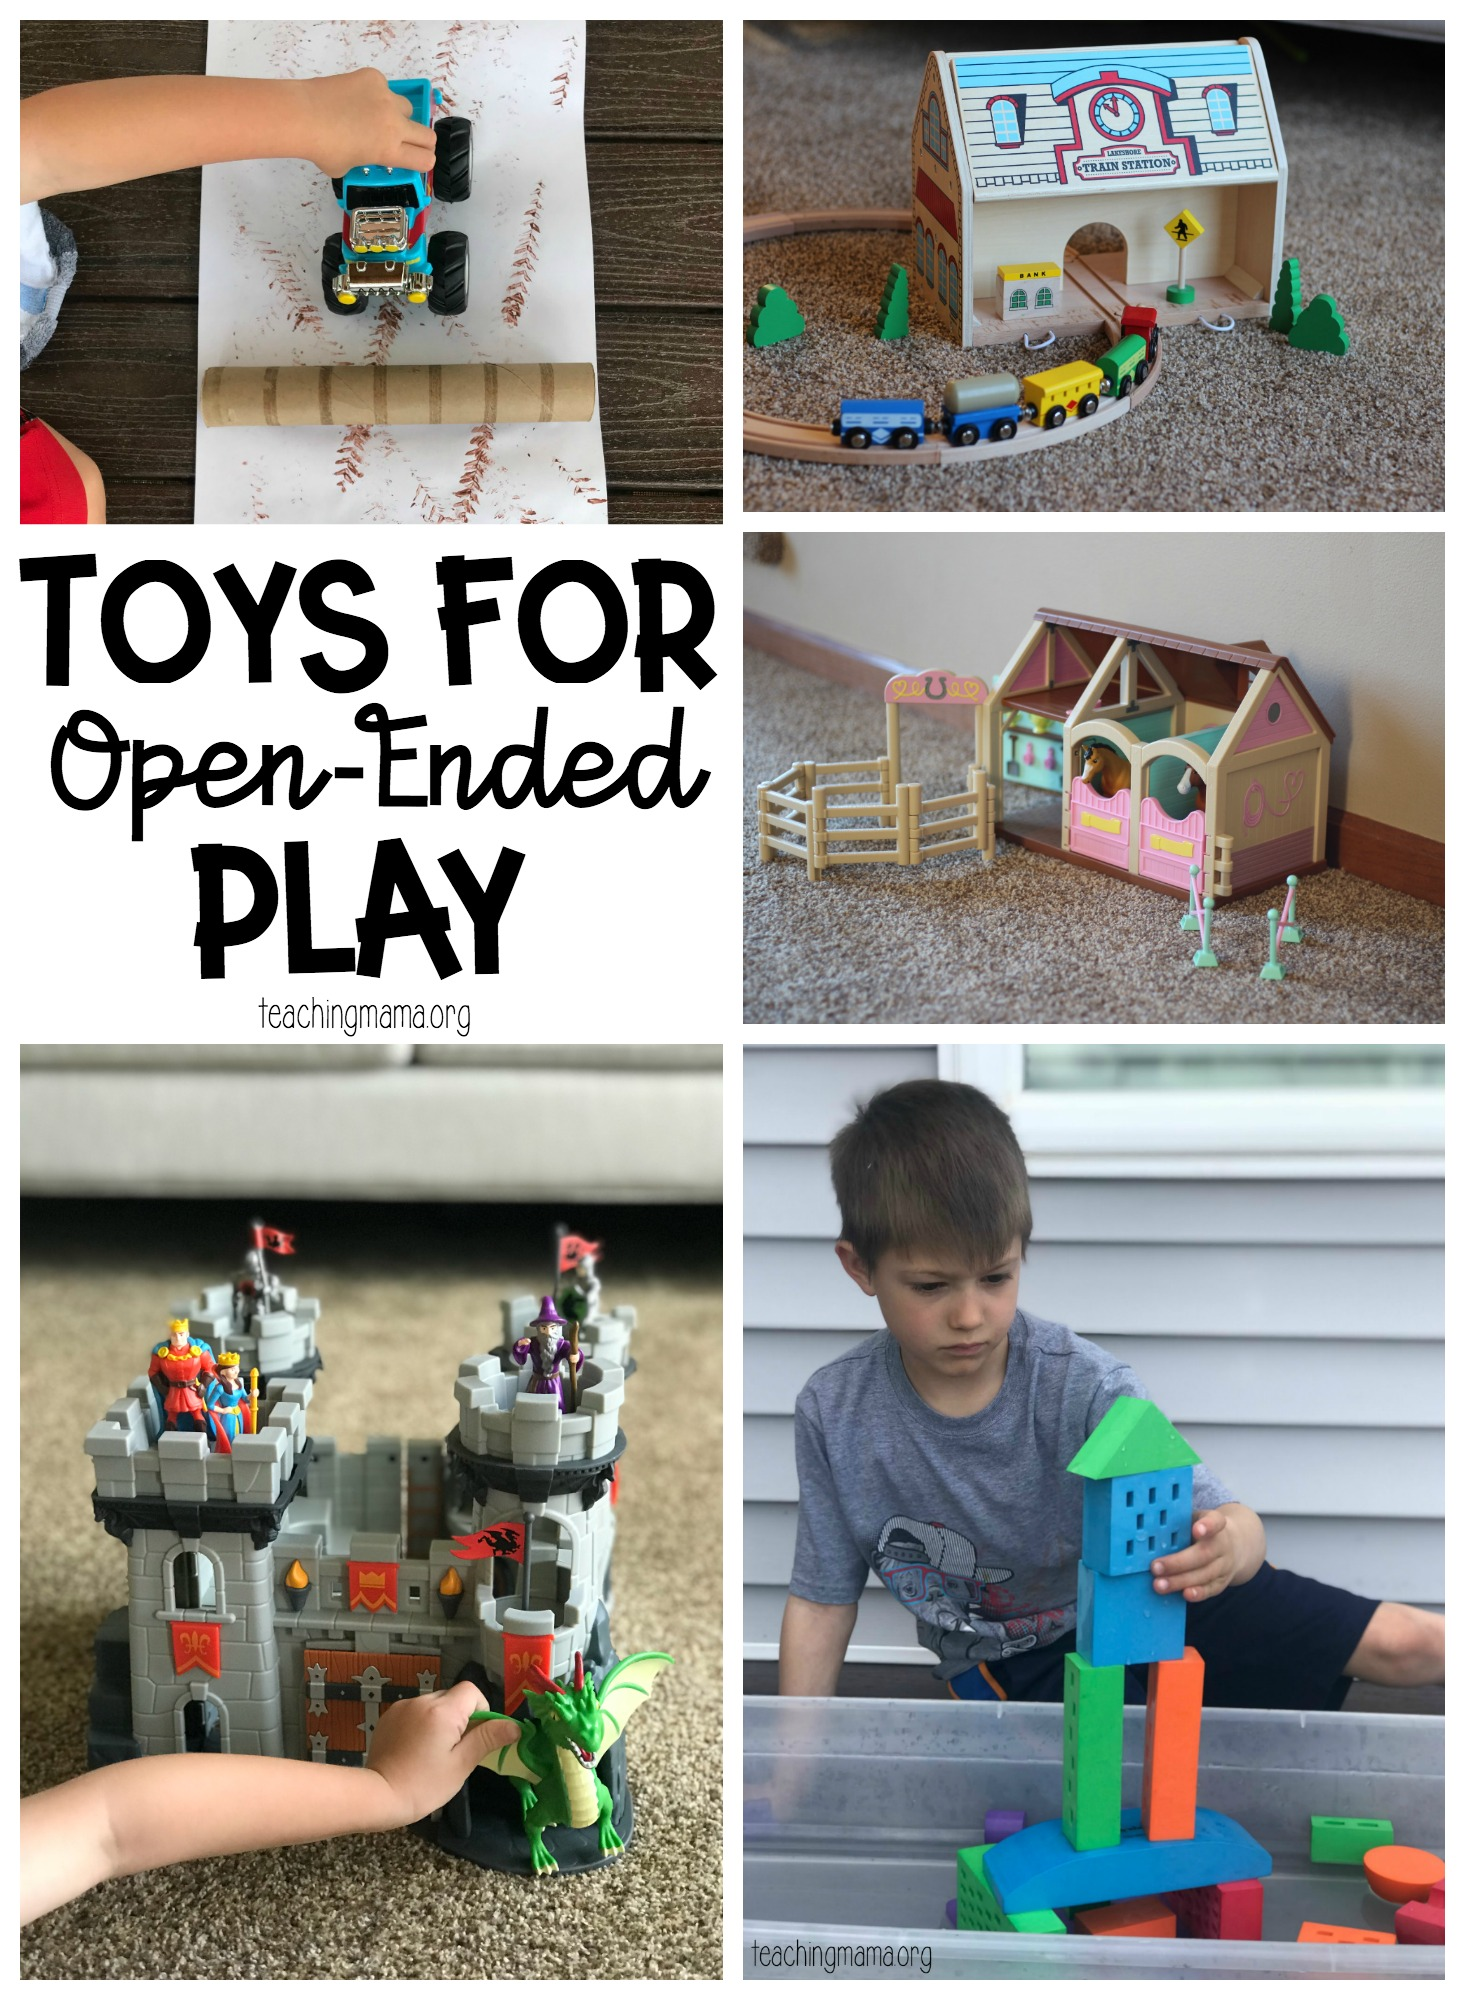 Toys for Open-Ended Play